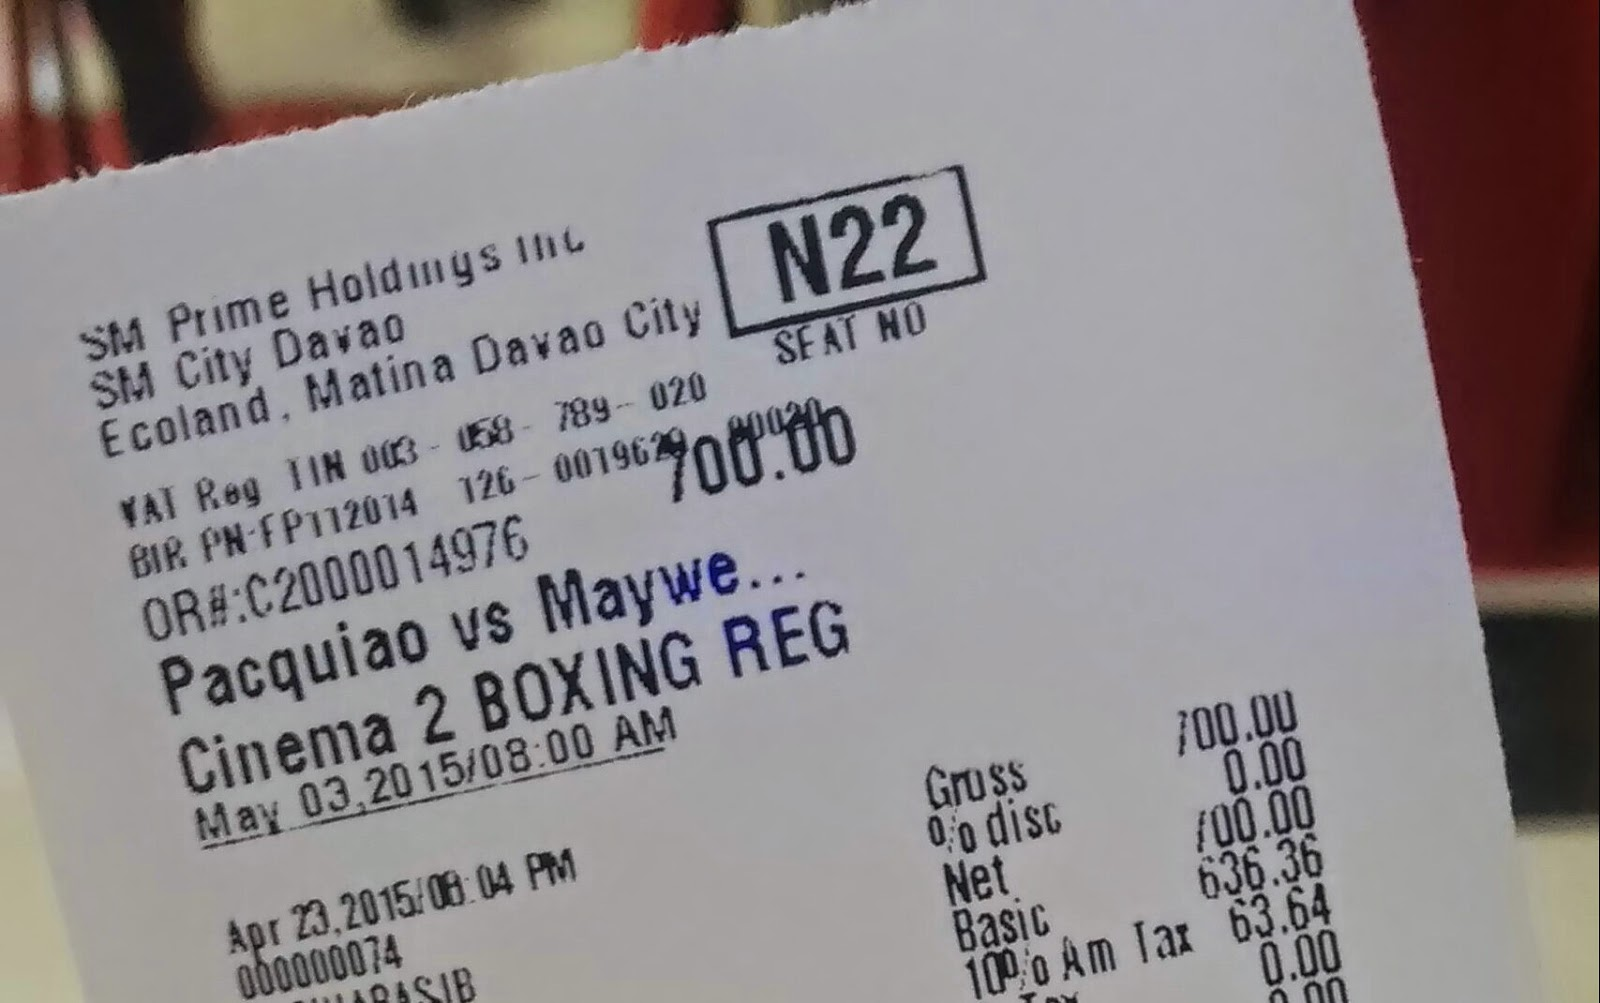 Pacquiao-Mayweather at SM Cinema